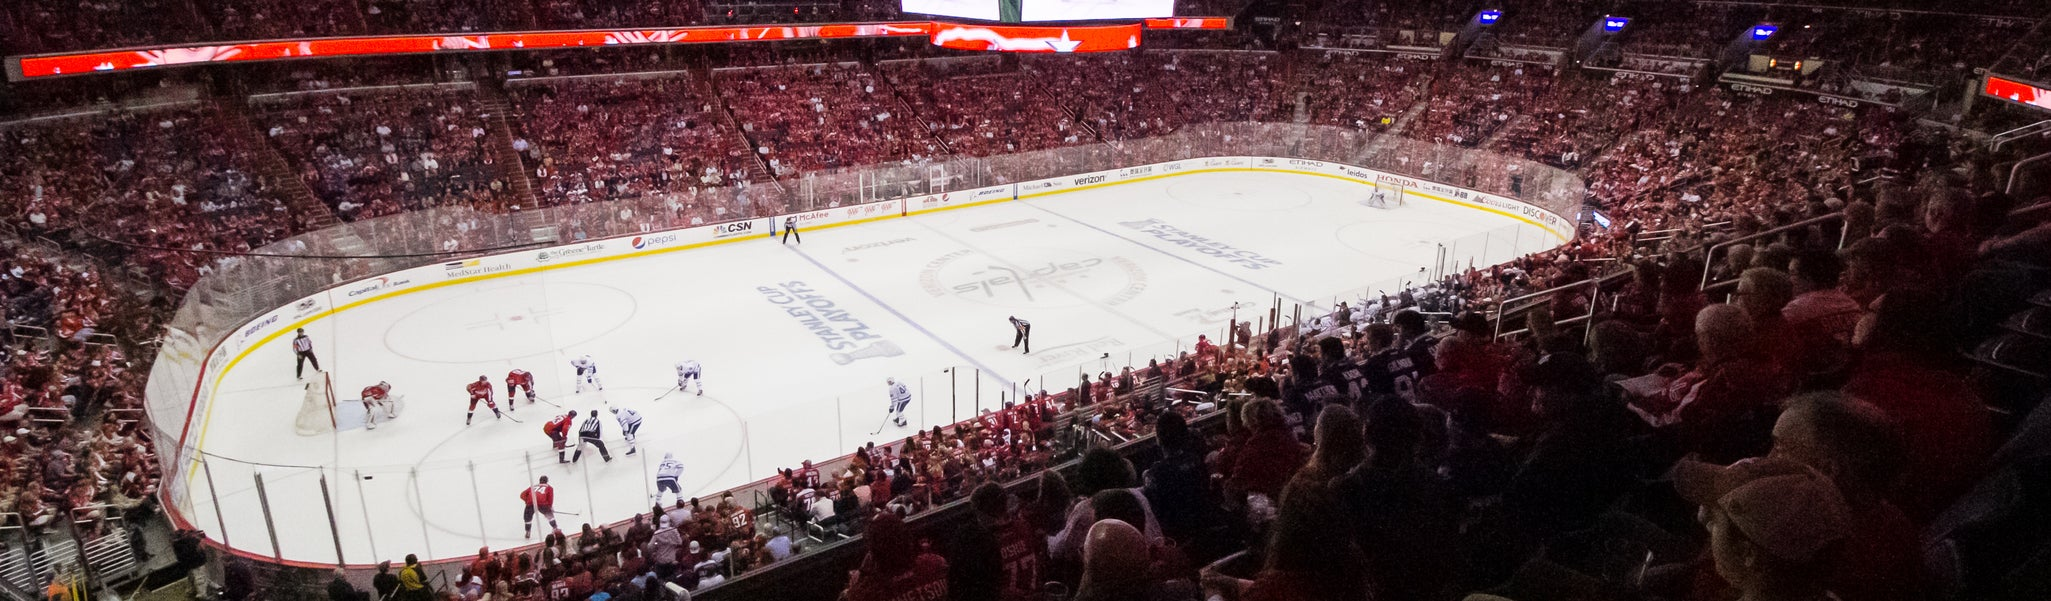 Seat view from Acela Level Corner 227 at Capital One Arena